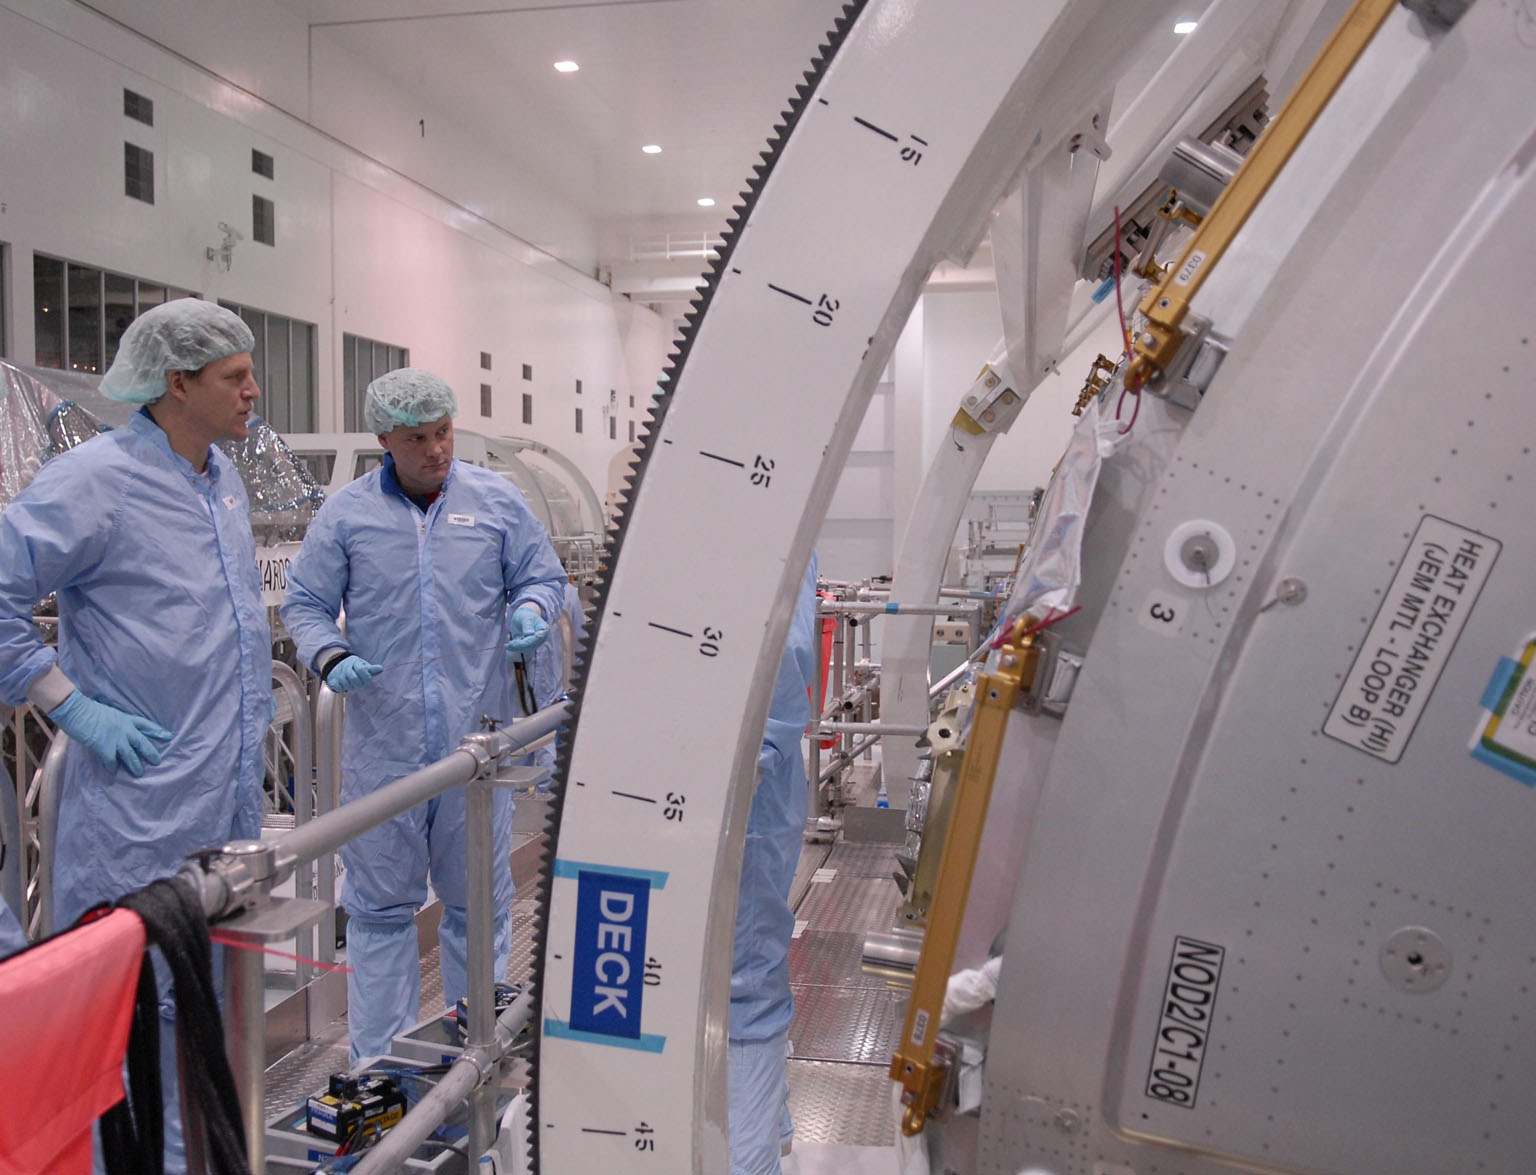 KENNEDY SPACE CENTER, FLA. -- STS-120 Mission Specialists Scott Parazynski (left) and Doug Wheelock check out the primary payload for the mission: the U.S. Node 2, another element to be added to the International Space Station. They are familiarizing themselves with the payload. Node 2 will provide a passageway between three station science experiment facilities: the U.S. Destiny Laboratory, the Kibo Japanese Experiment Module, and the European Columbus Laboratory. STS-120 is targeted for launch on Sept. 7 with a crew of six, including Commander Pam Melroy, Pilot George Zamka, and Mission Specialist Mike Foreman. Photo credit: NASA/Kim Shiflett